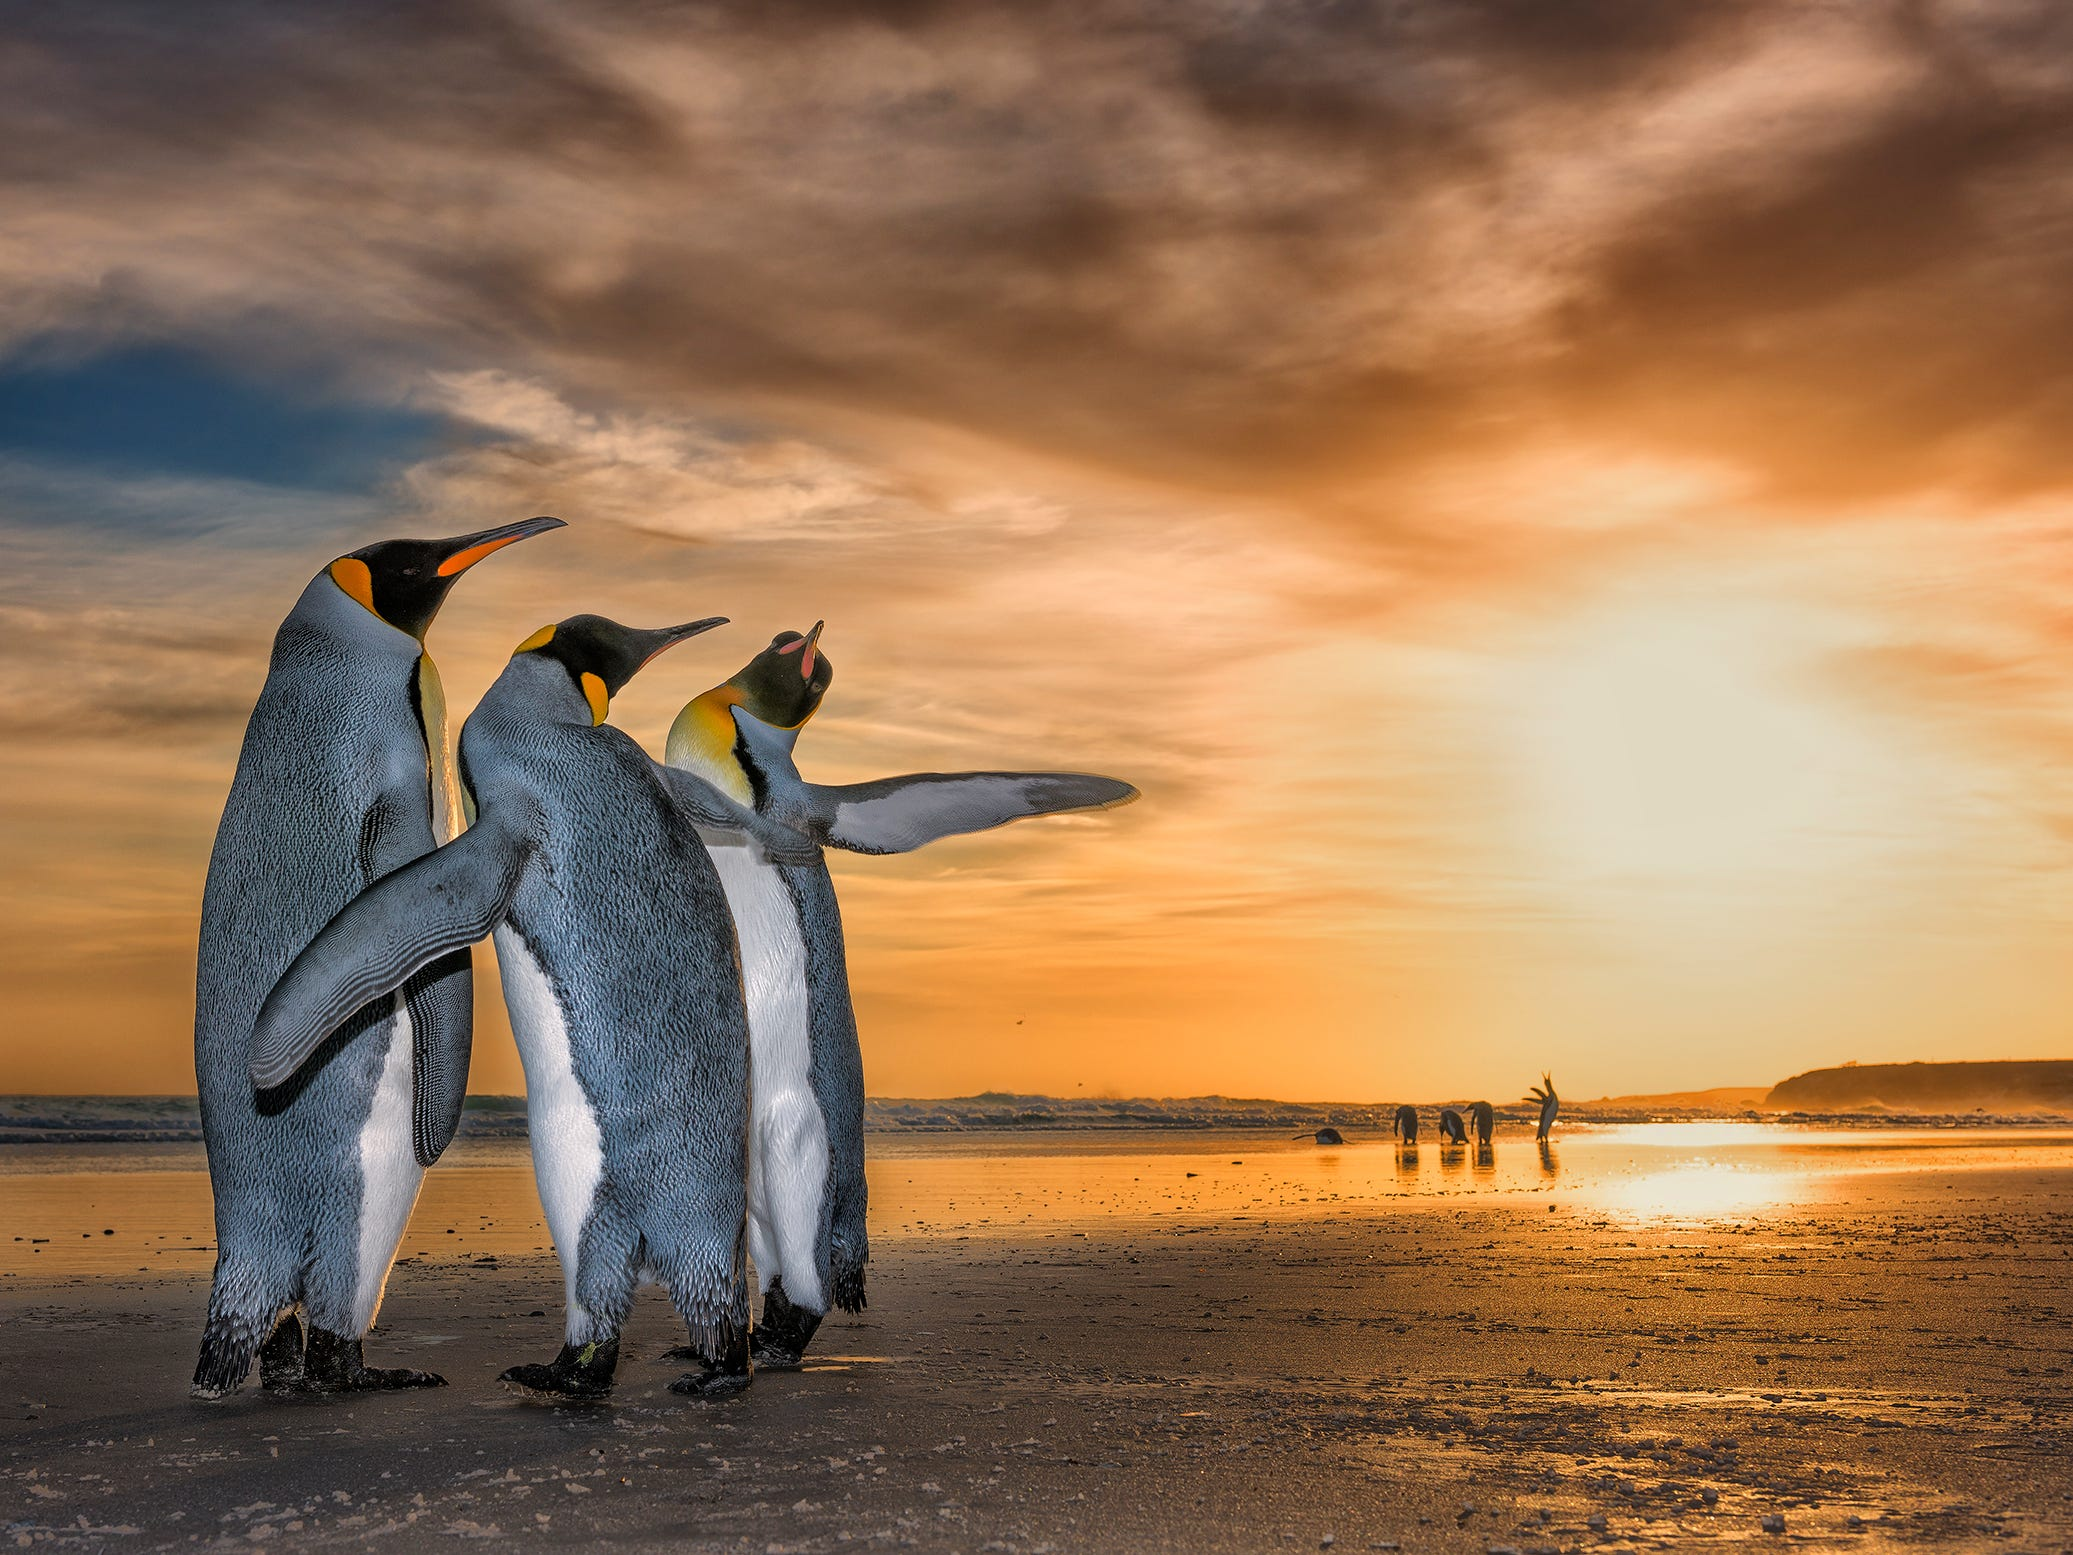 Three Kings by Wim Van Den Heever, South Africa -- Wim came across these king penguins on a beach in the Falkland Islands just as the sun was rising. They were caught up in a fascinating mating behavior – the two males were constantly moving around the female using their flippers to fend the other off. -- Nikon D810 + Nikon 24-70mm f2.8 lens at 40mm; 1/250sec at f11; Nikon SB910 flash.